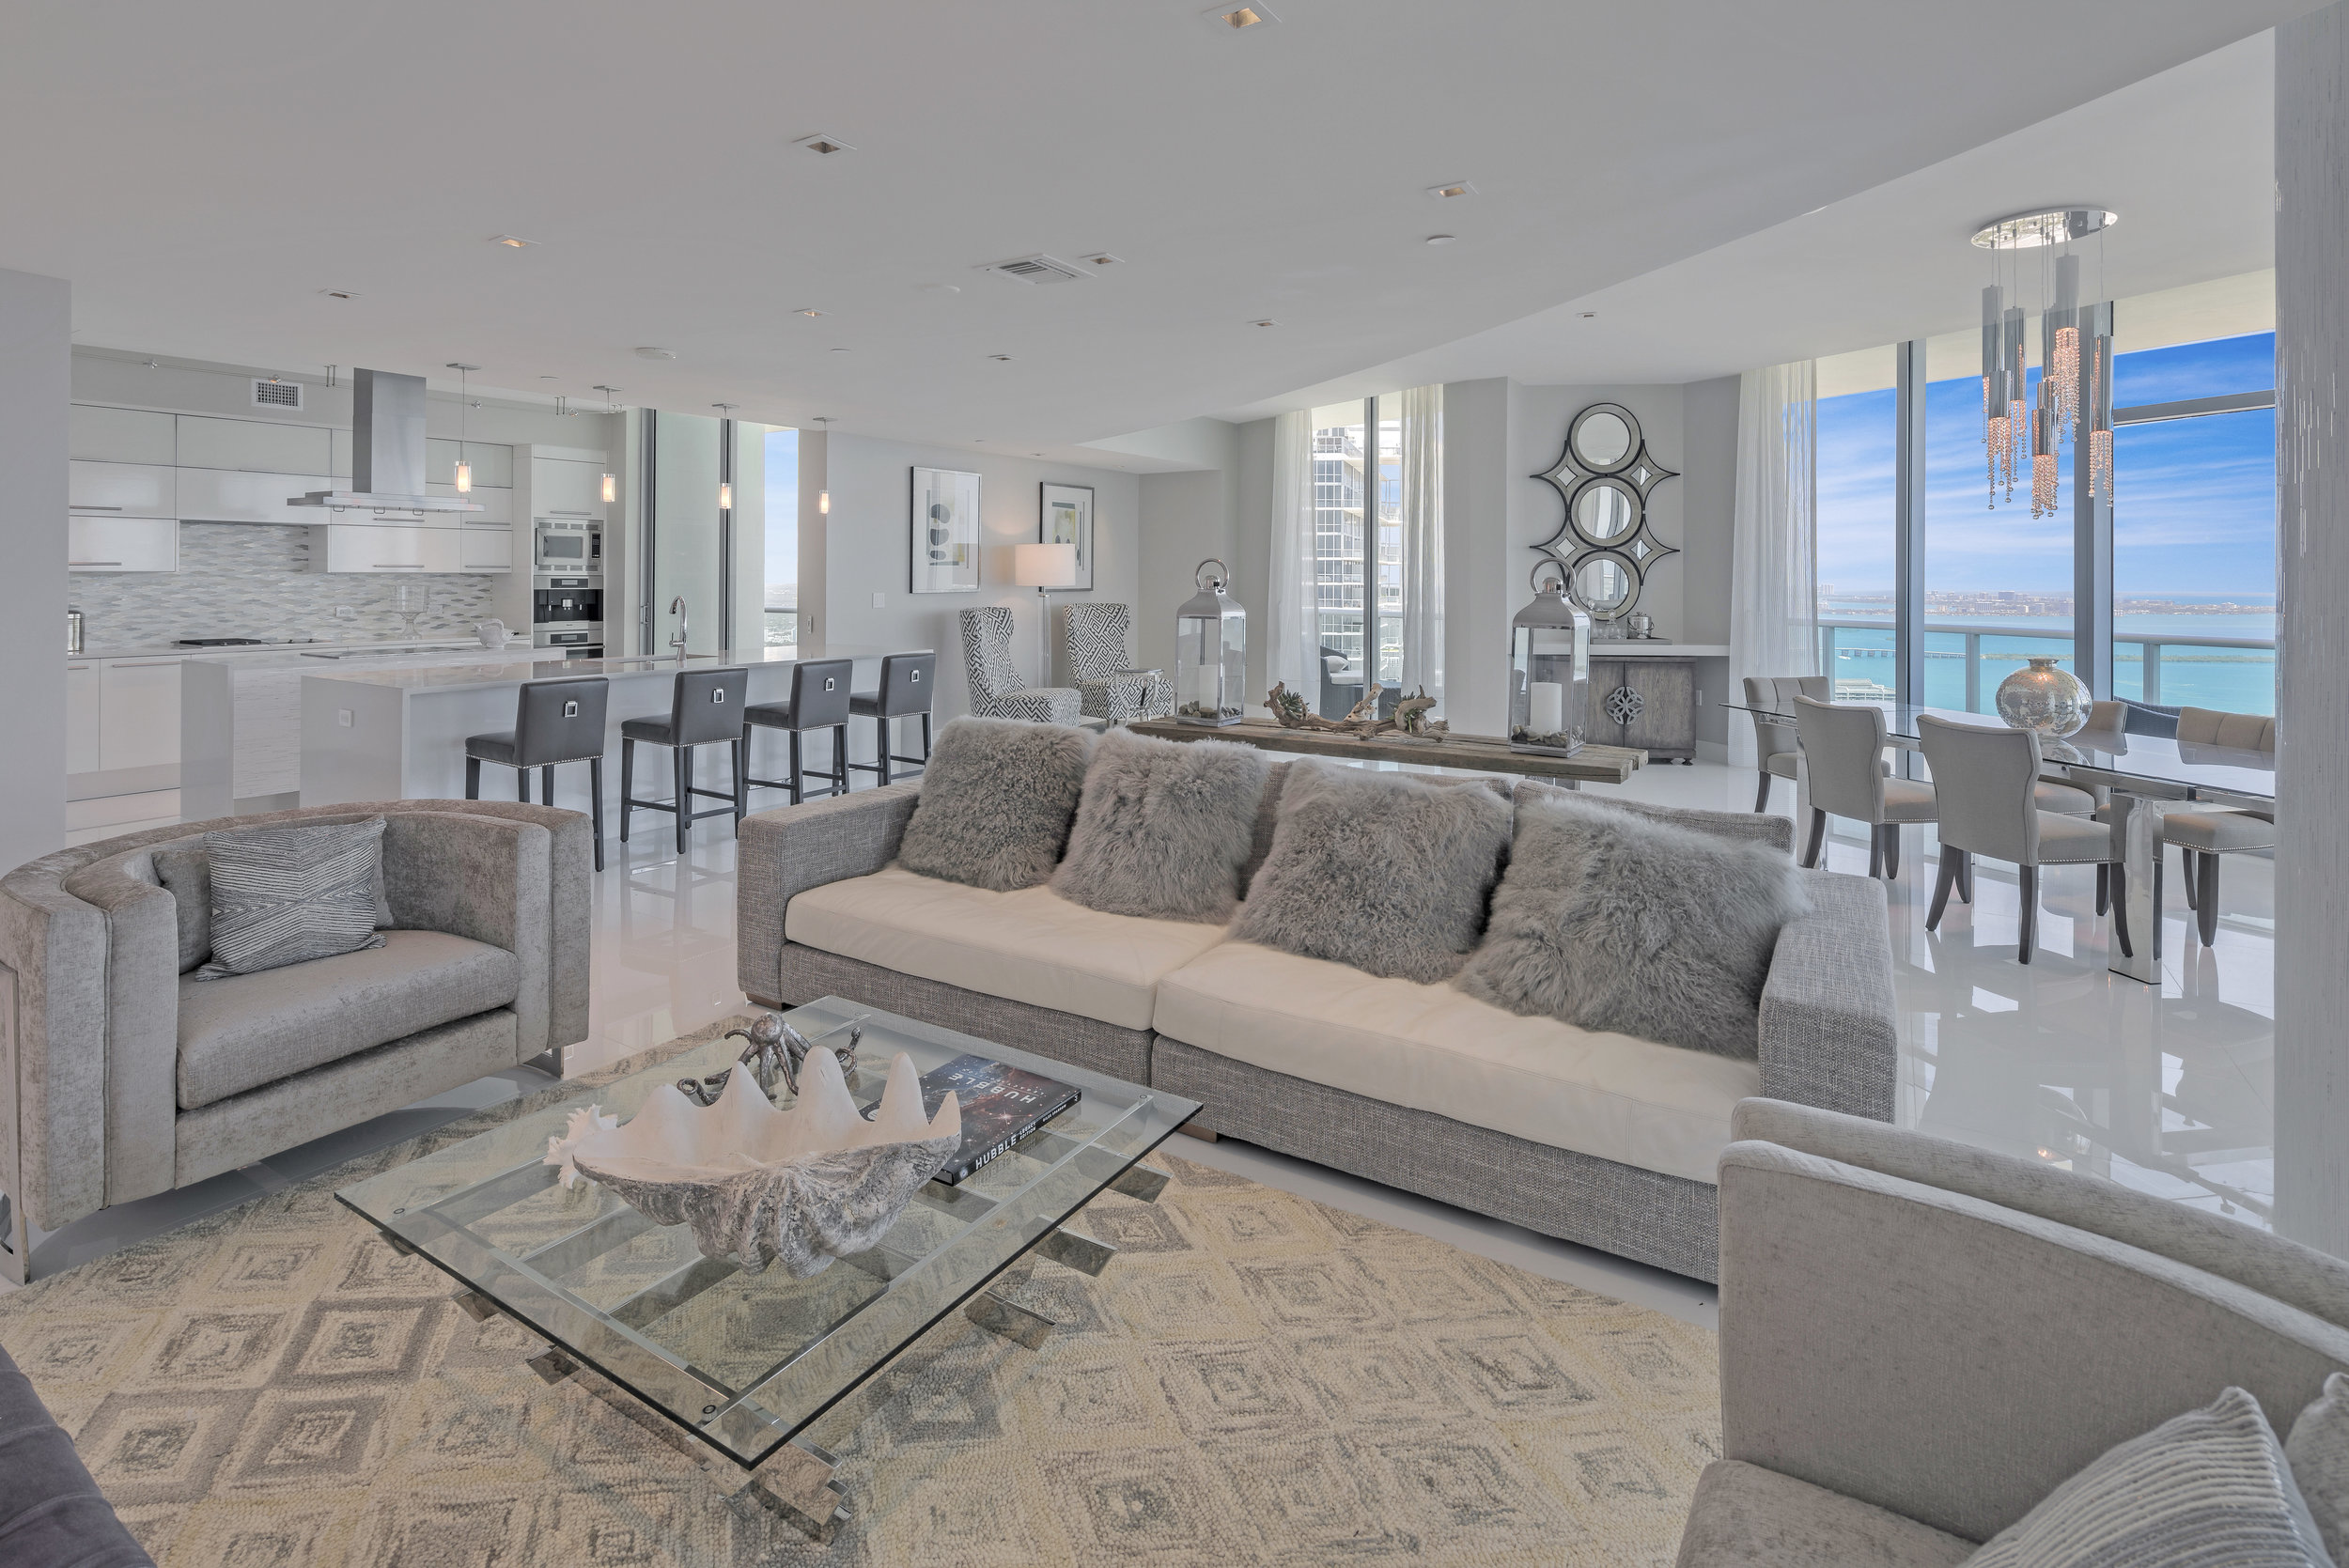 NBA Star Kevin Durant's Former Miami Penthouse At 900 Biscayne Hits Market For $3.6 Million